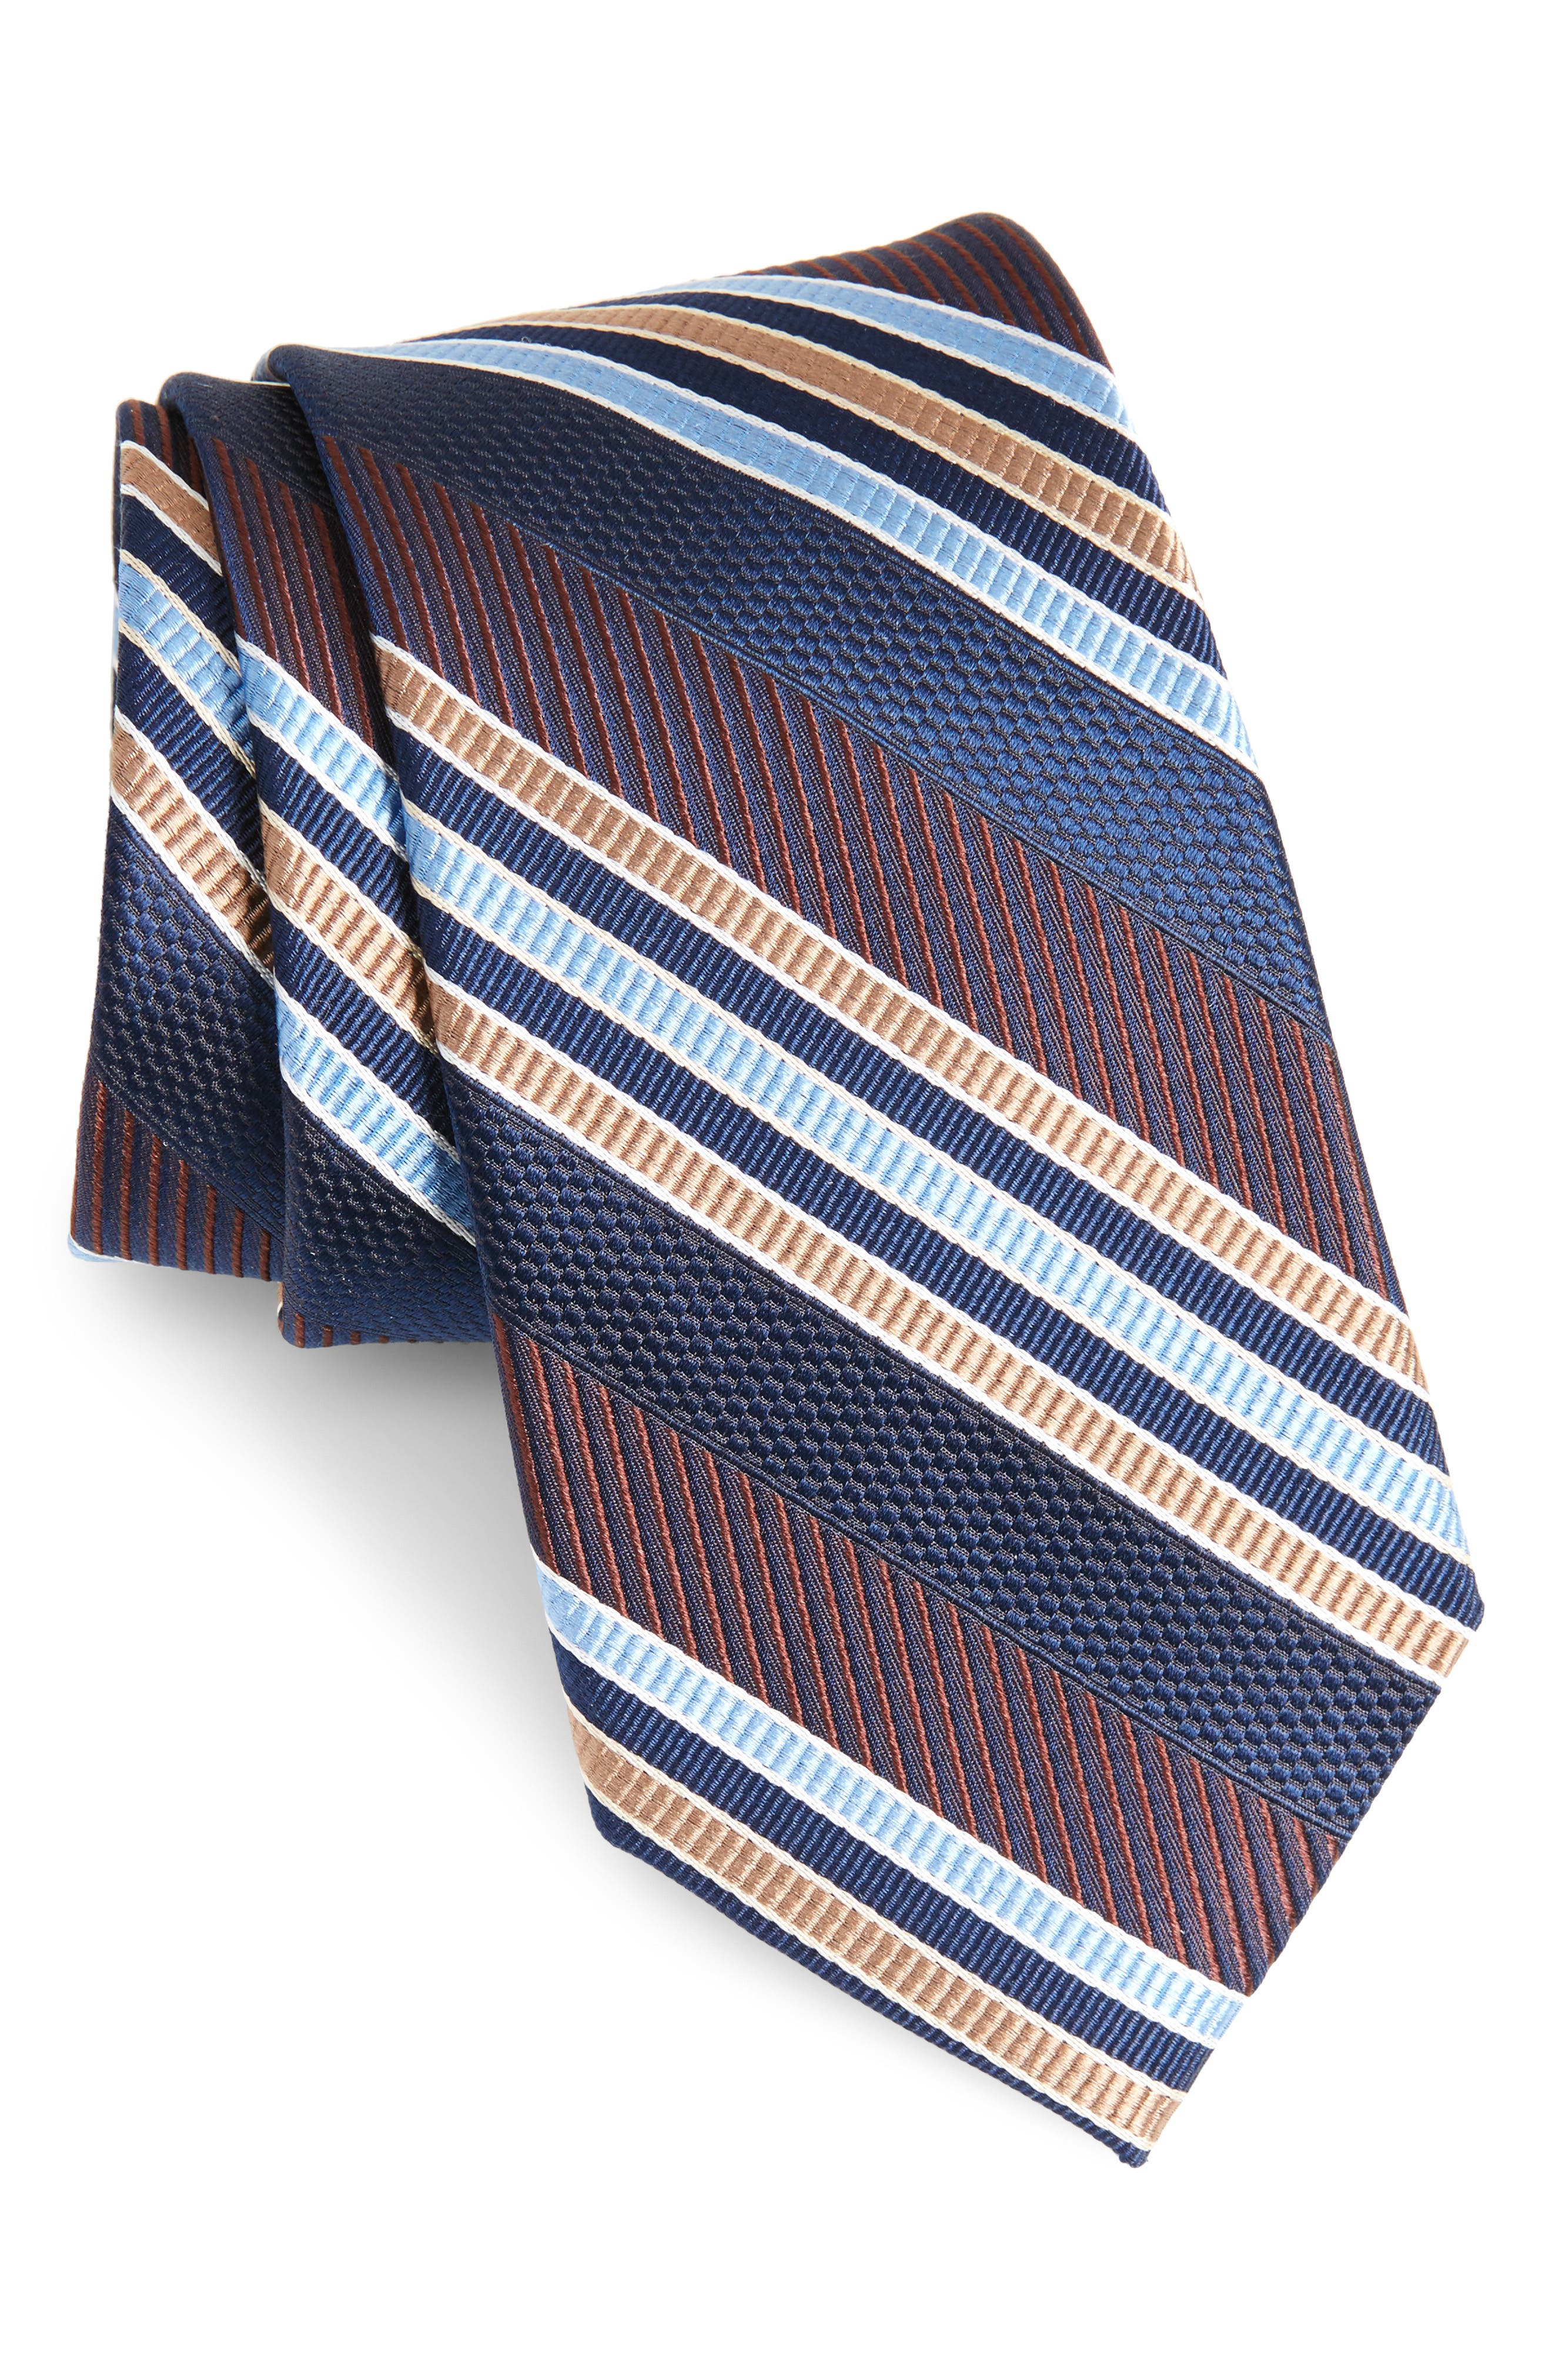 Northwest Stripe Silk Tie,                         Main,                         color, 210